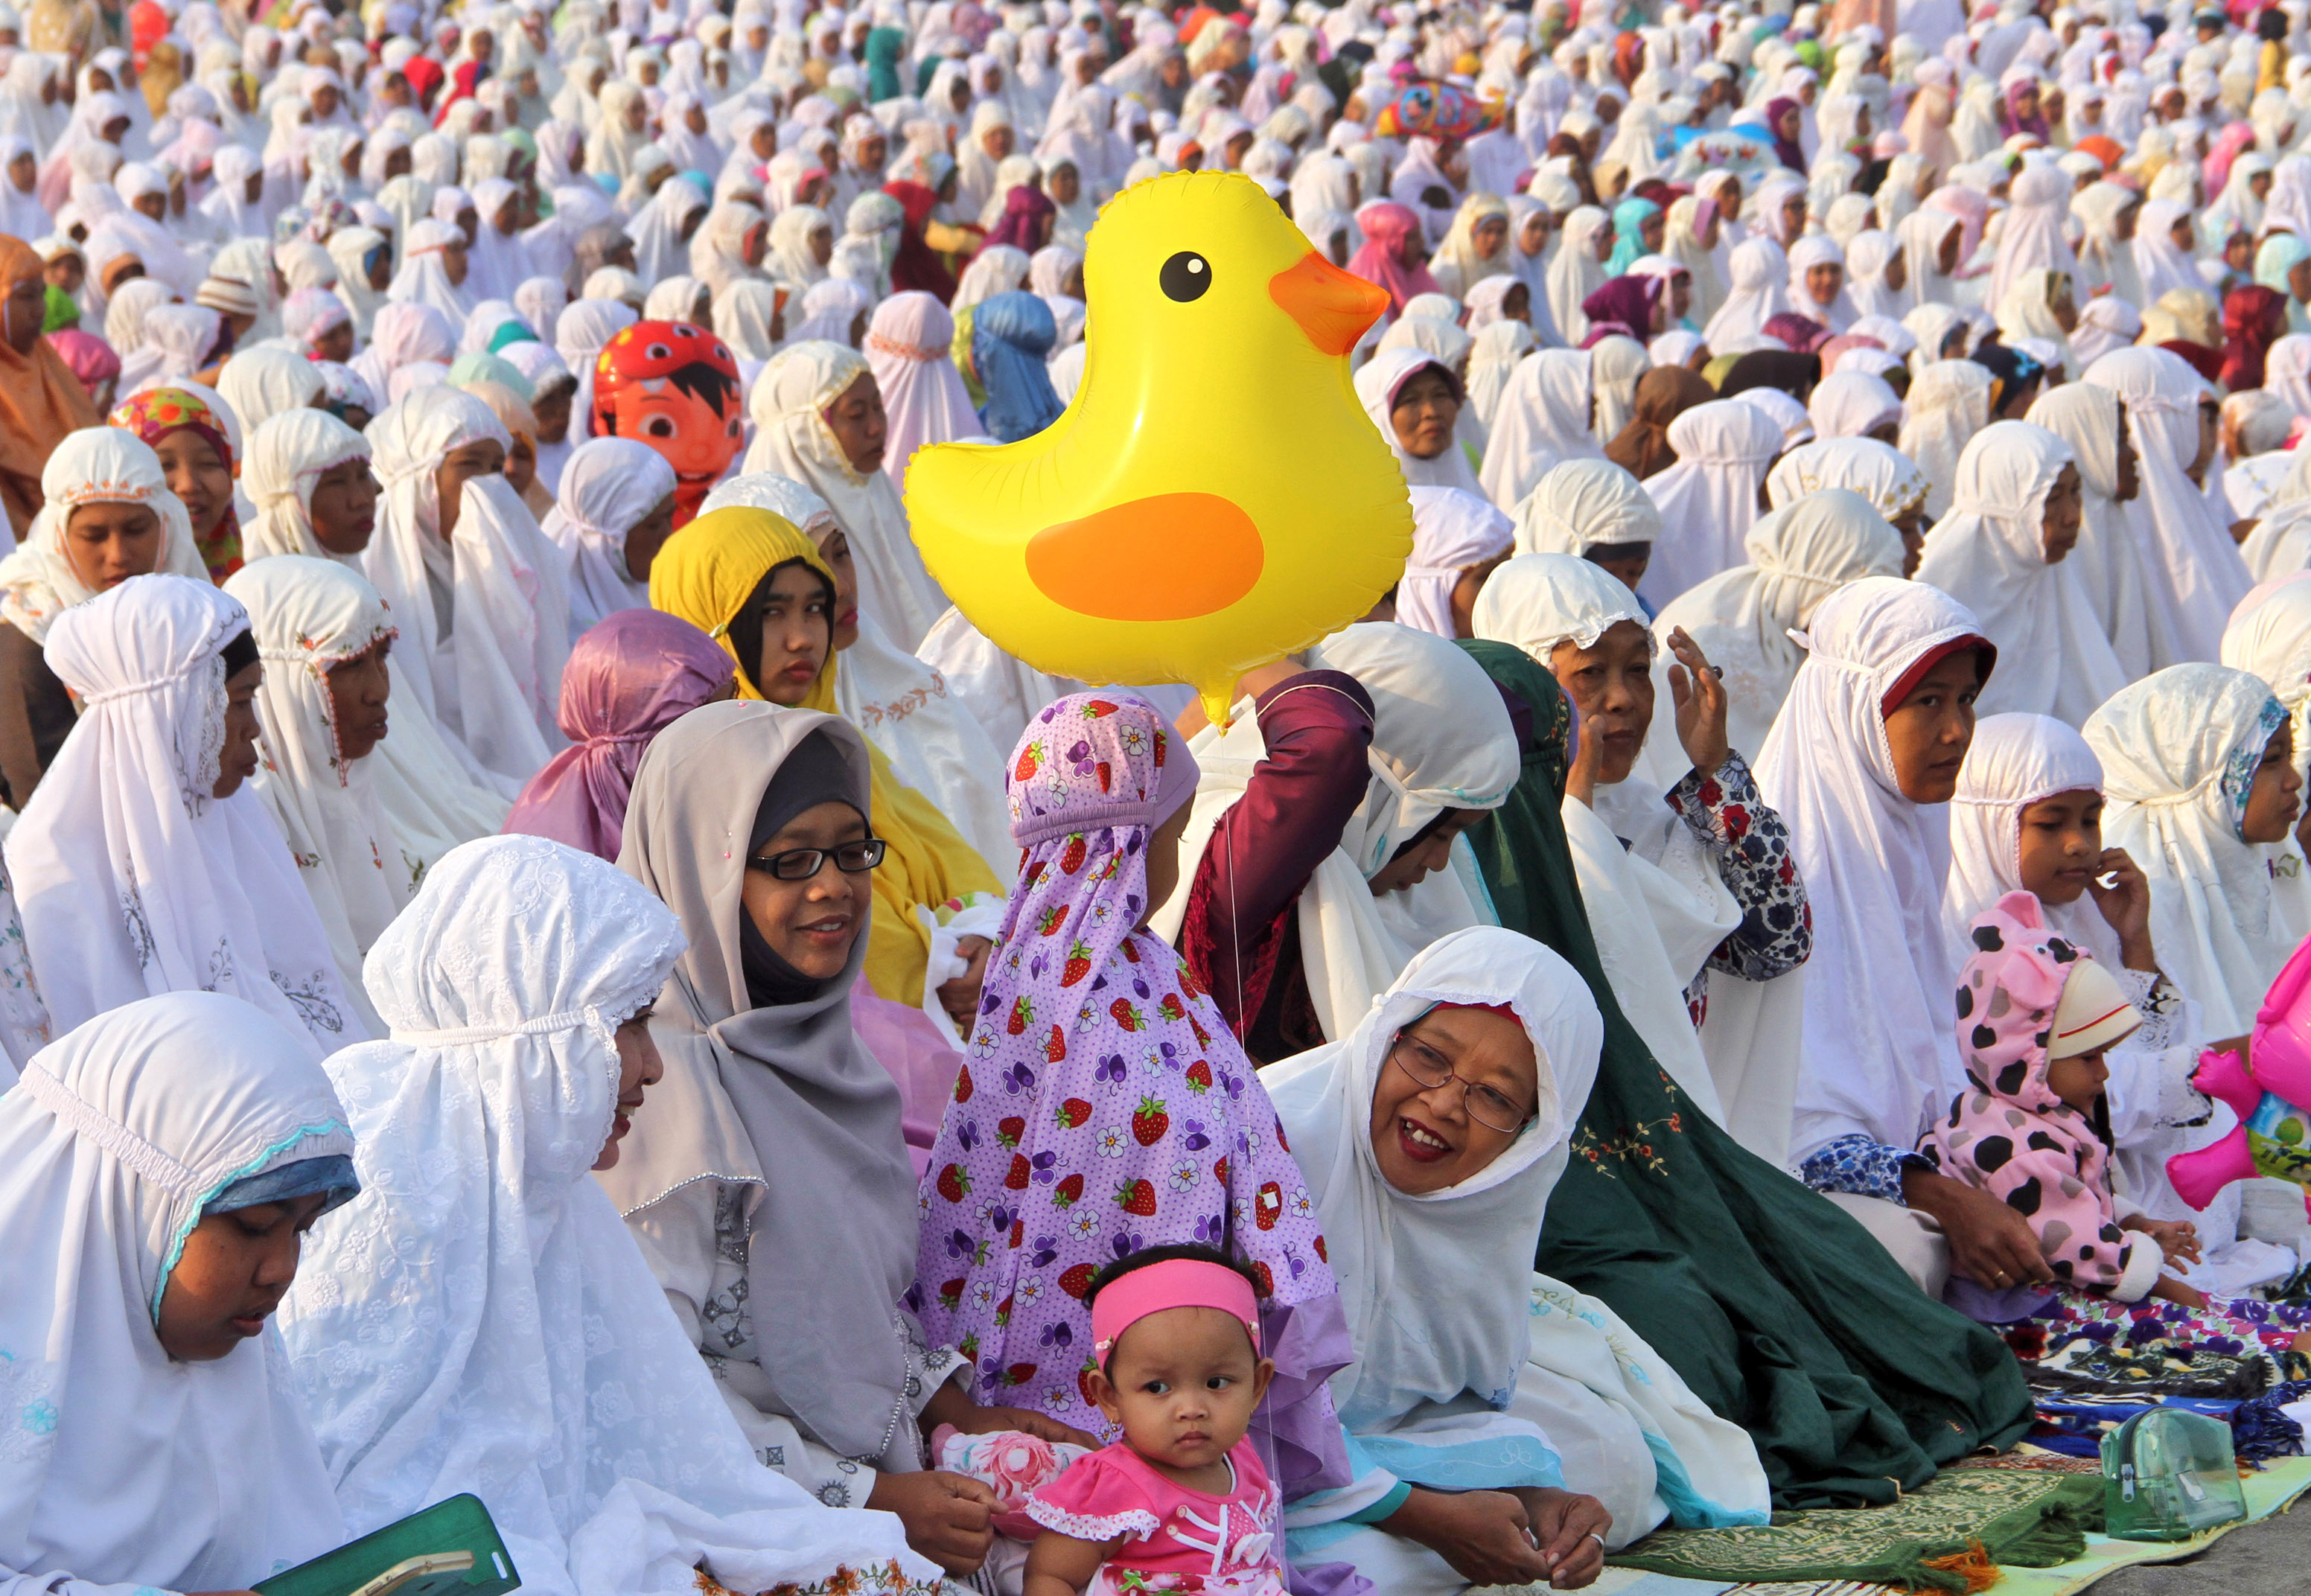 eid celebration Muslims all over the world celebrate the festival of eid al fitr by starting the day with the eid prayer after the eid prayers, people greet each other with the customary eid greetings , eid mubarak with a formal embrace, three times.